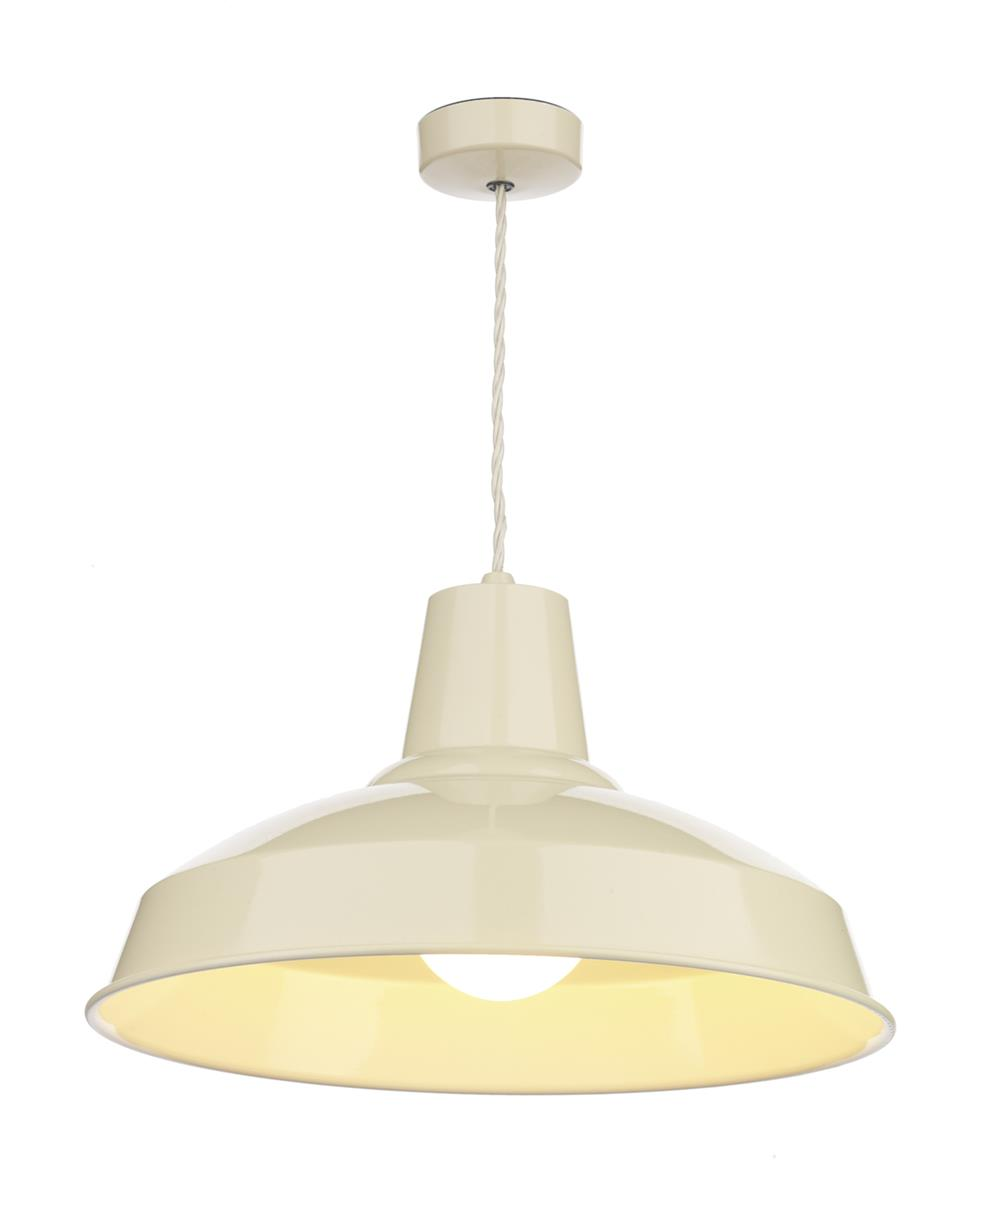 David Hunt Lighting REC0133 Reclamation 1 Light Pendant in Cream